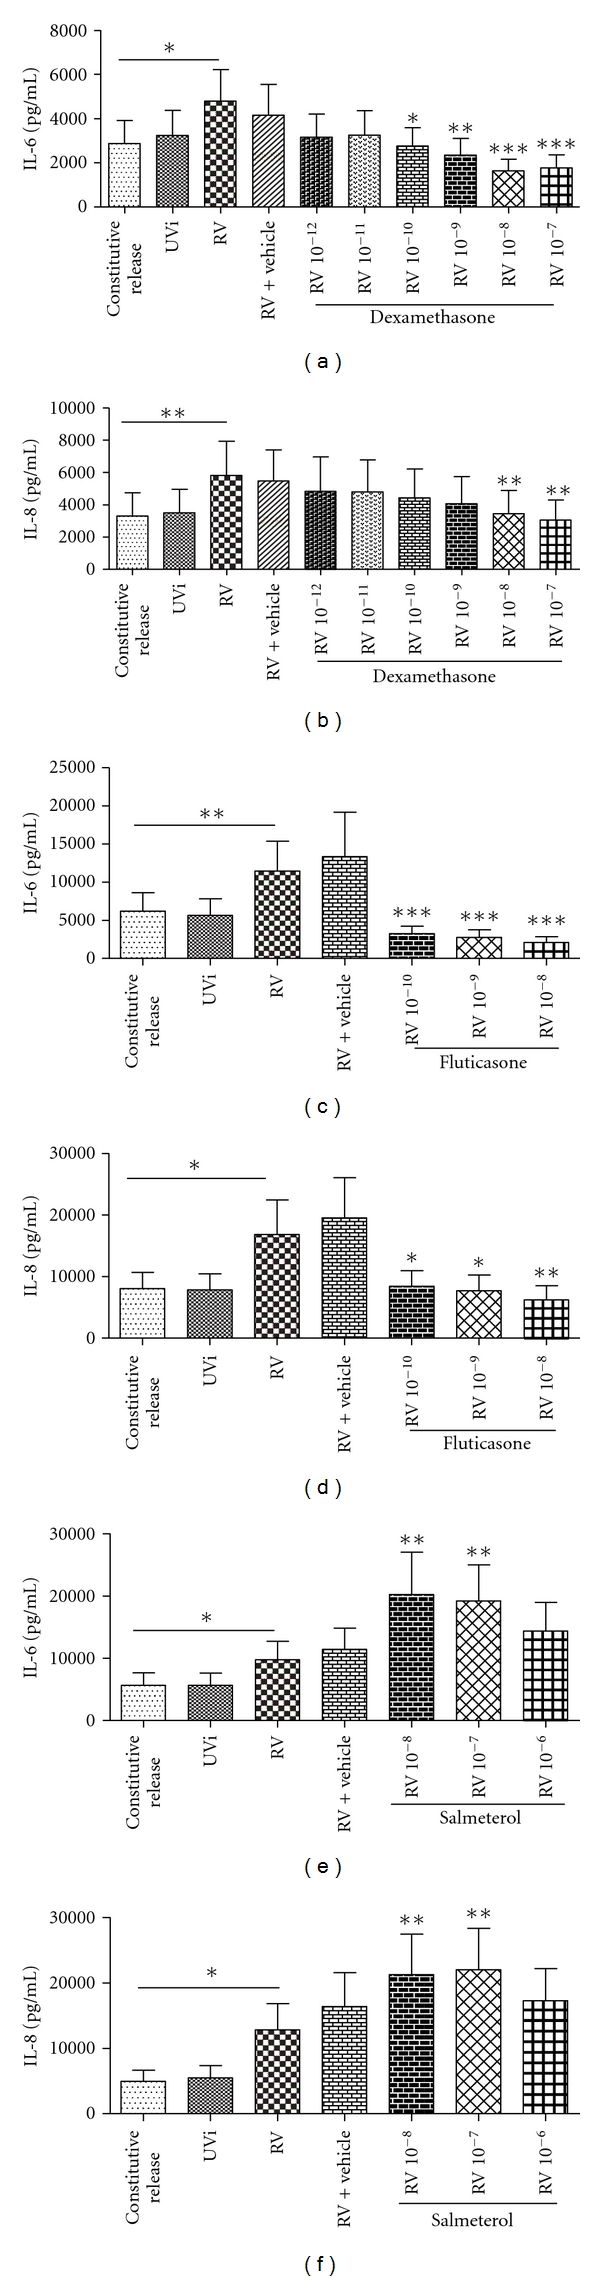 (a–f) Effect of dexamethasone (Dex), fluticasone (Flut) and salmeterol (Sal) on RV-induced IL-6 and IL-8. Concentration of IL-6 and IL-8 release from noninfected fibroblasts (constitutive release), UVi-RV-(UVi-) or RV-16-infected fibroblasts (RV) (MOI = 0.1), highest concentration of vehicle (Dex Sal: 0.1% DMSO; Flut: 0.001% DMSO) and RV infected fibroblasts in the presence of Dex: 10 −12 –10 −7 M ( n = 7), Flut: 10 −10 –10 −8 M ( n = 7) and Sal: 10 −8 –10 −6 M ( n = 9) were measured 48 hrs post infection by ELISA. All IL-6 and IL-8 concentrations were compared to their respective RV-induced values (in the absence of drug and vehicle), using a 1-way ANOVA. All data are presented as mean ± SEM. Significance is represented as * P